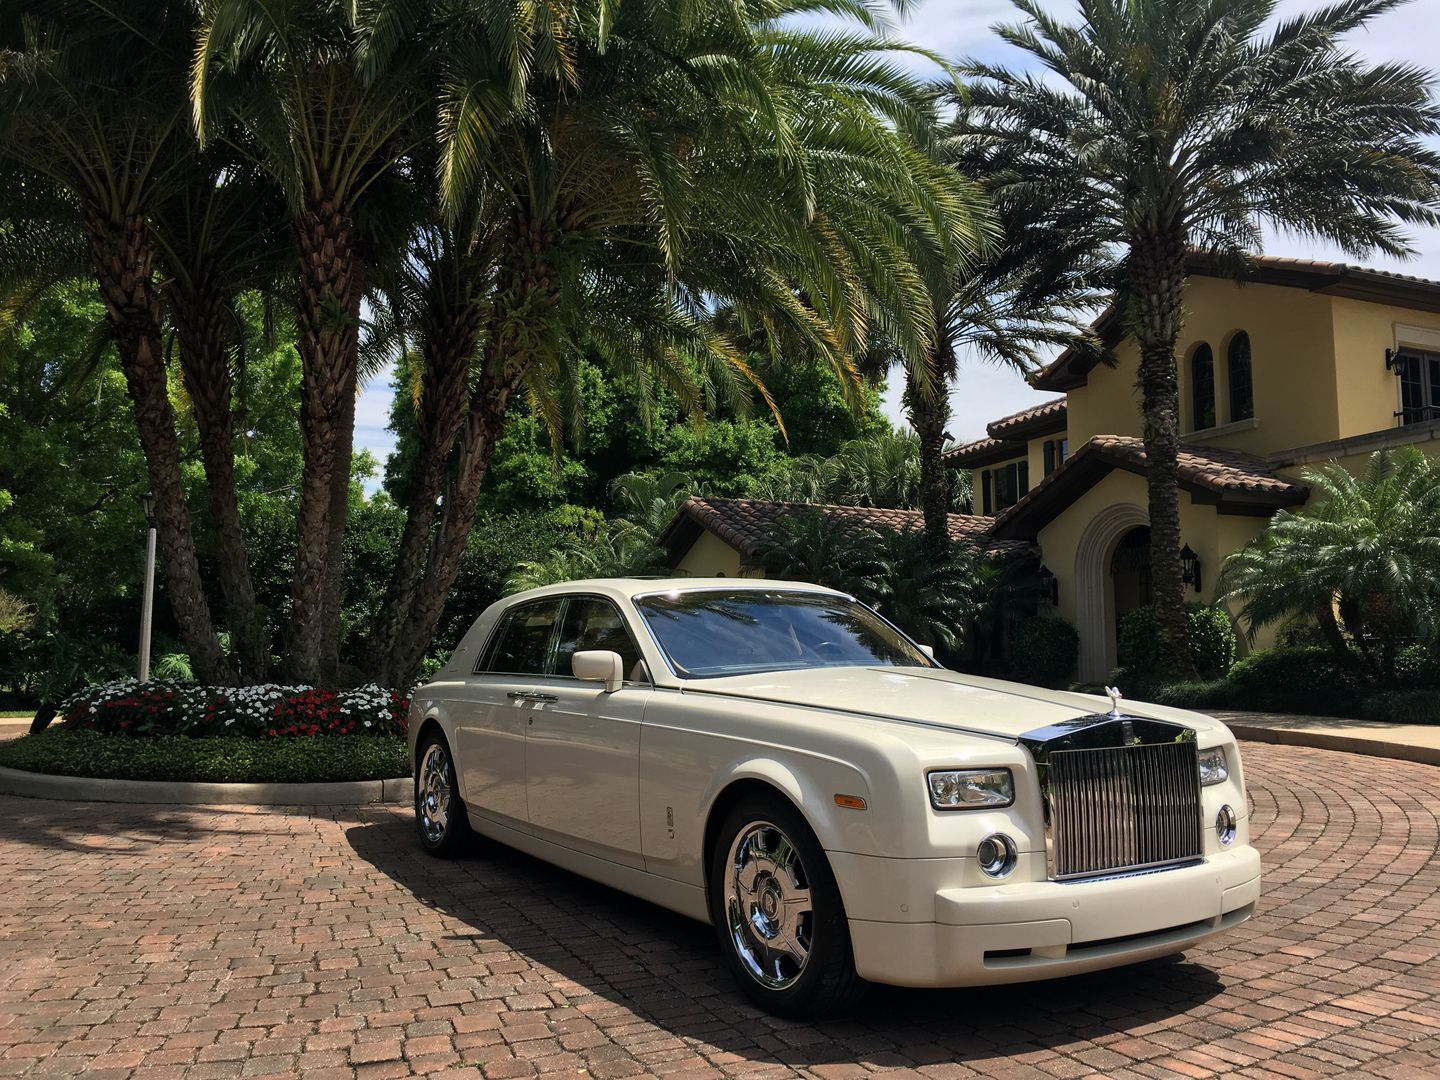 Rent Our White Rolls Royce Phantom For Your Wedding Call Today To Make A Rolls Royce Rolls Royce Phantom White Rolls Royce